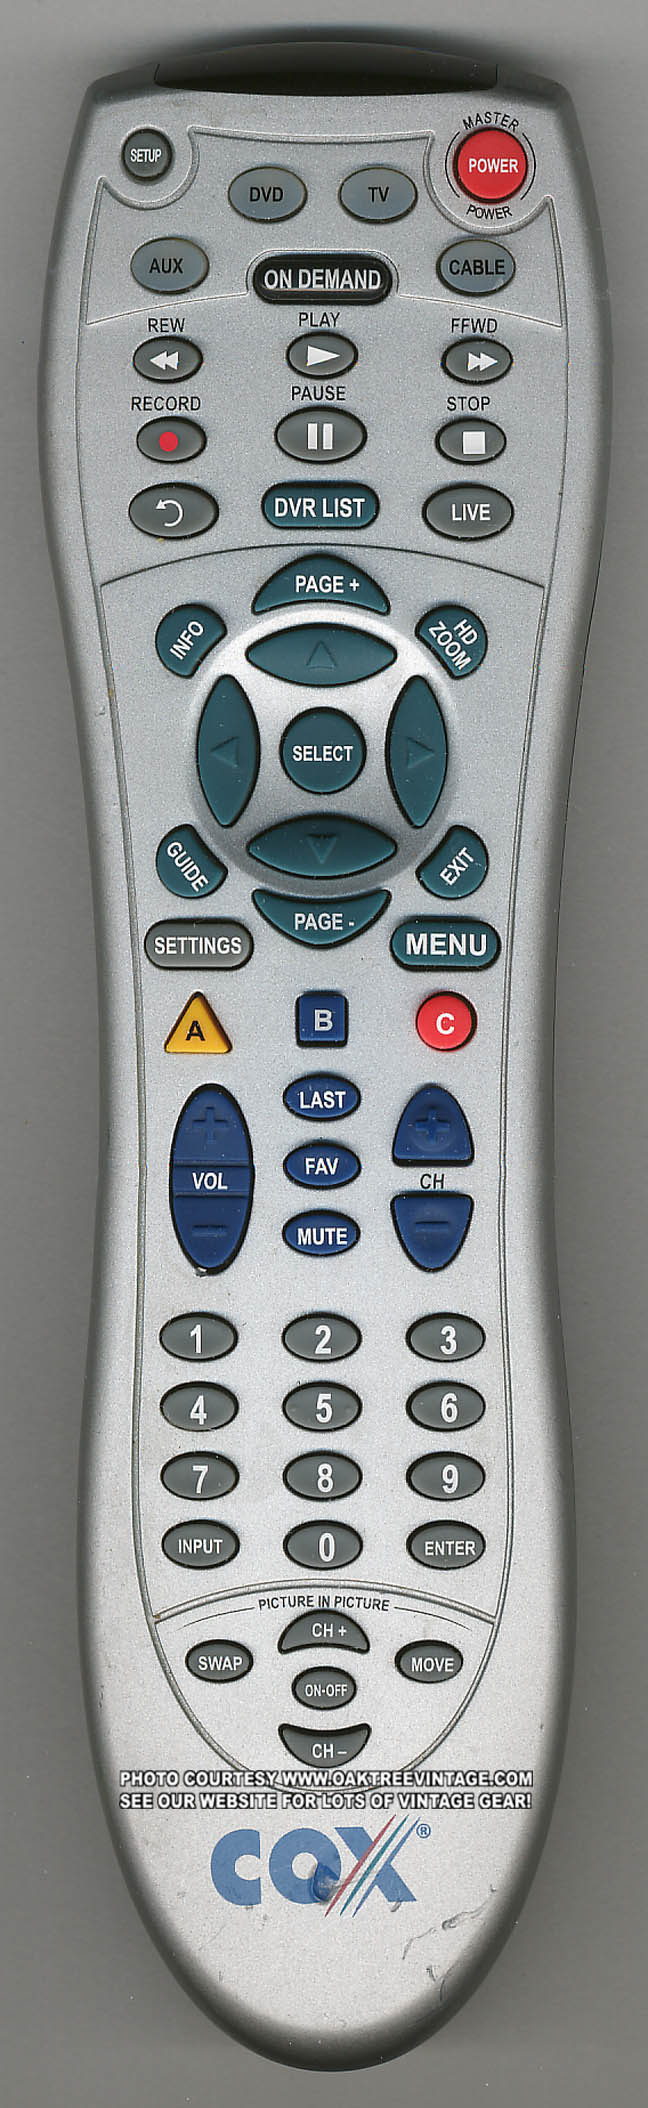 Cox Cable Universal Remote Manual